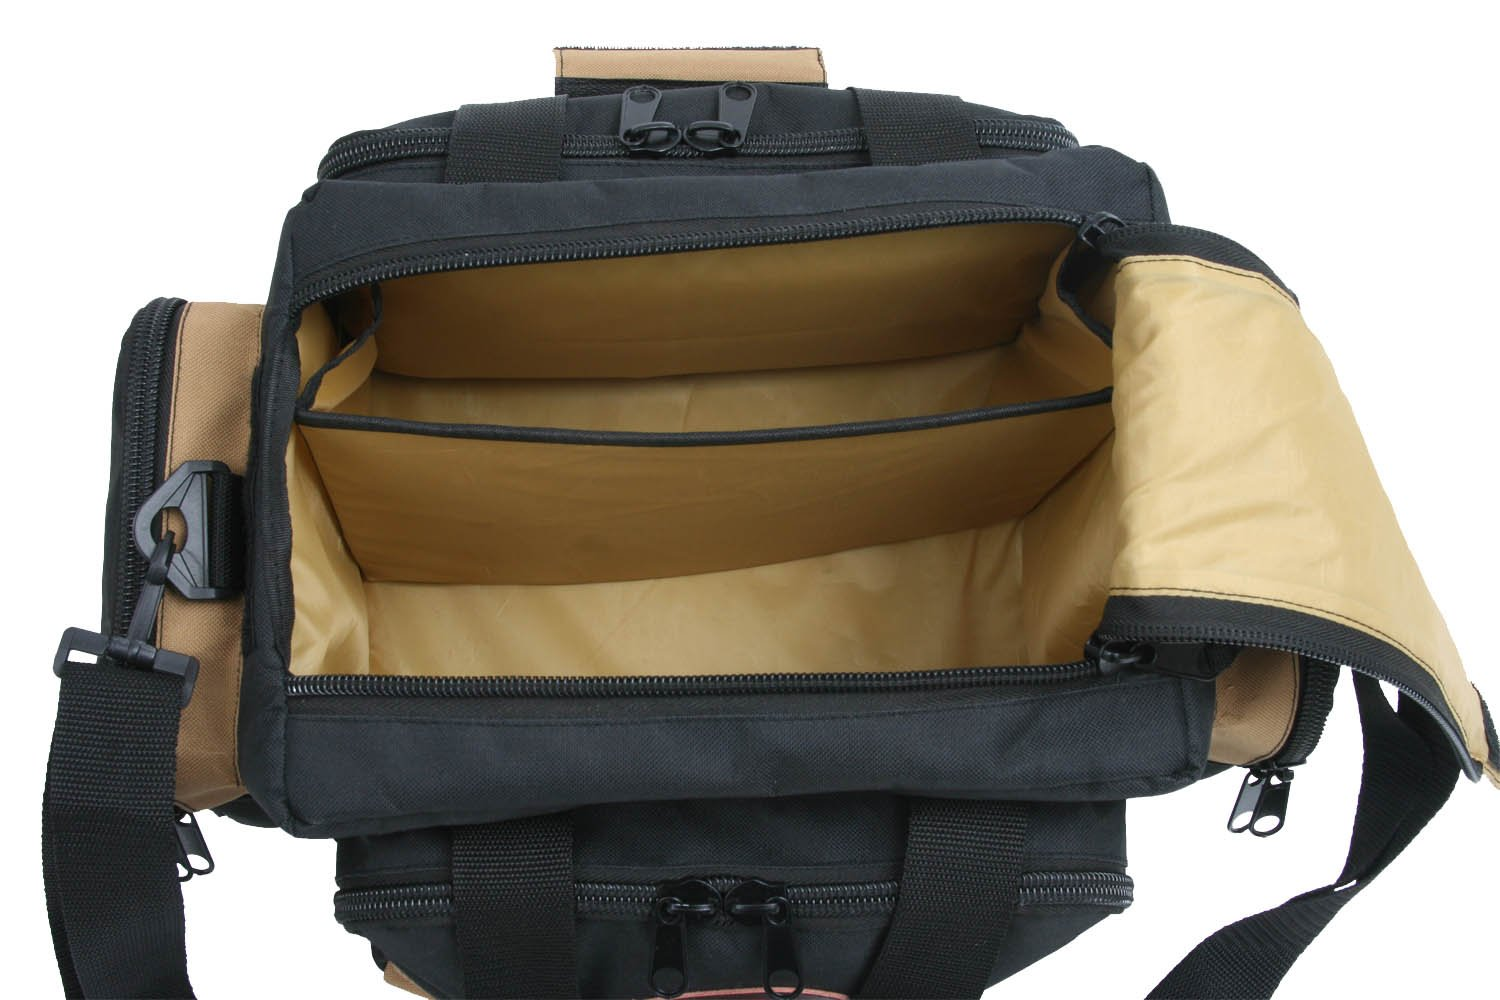 Outdoor Connection BGRNG1-28110 Deluxe Range Bag (Tan/Black) by Outdoor Connection (Image #3)